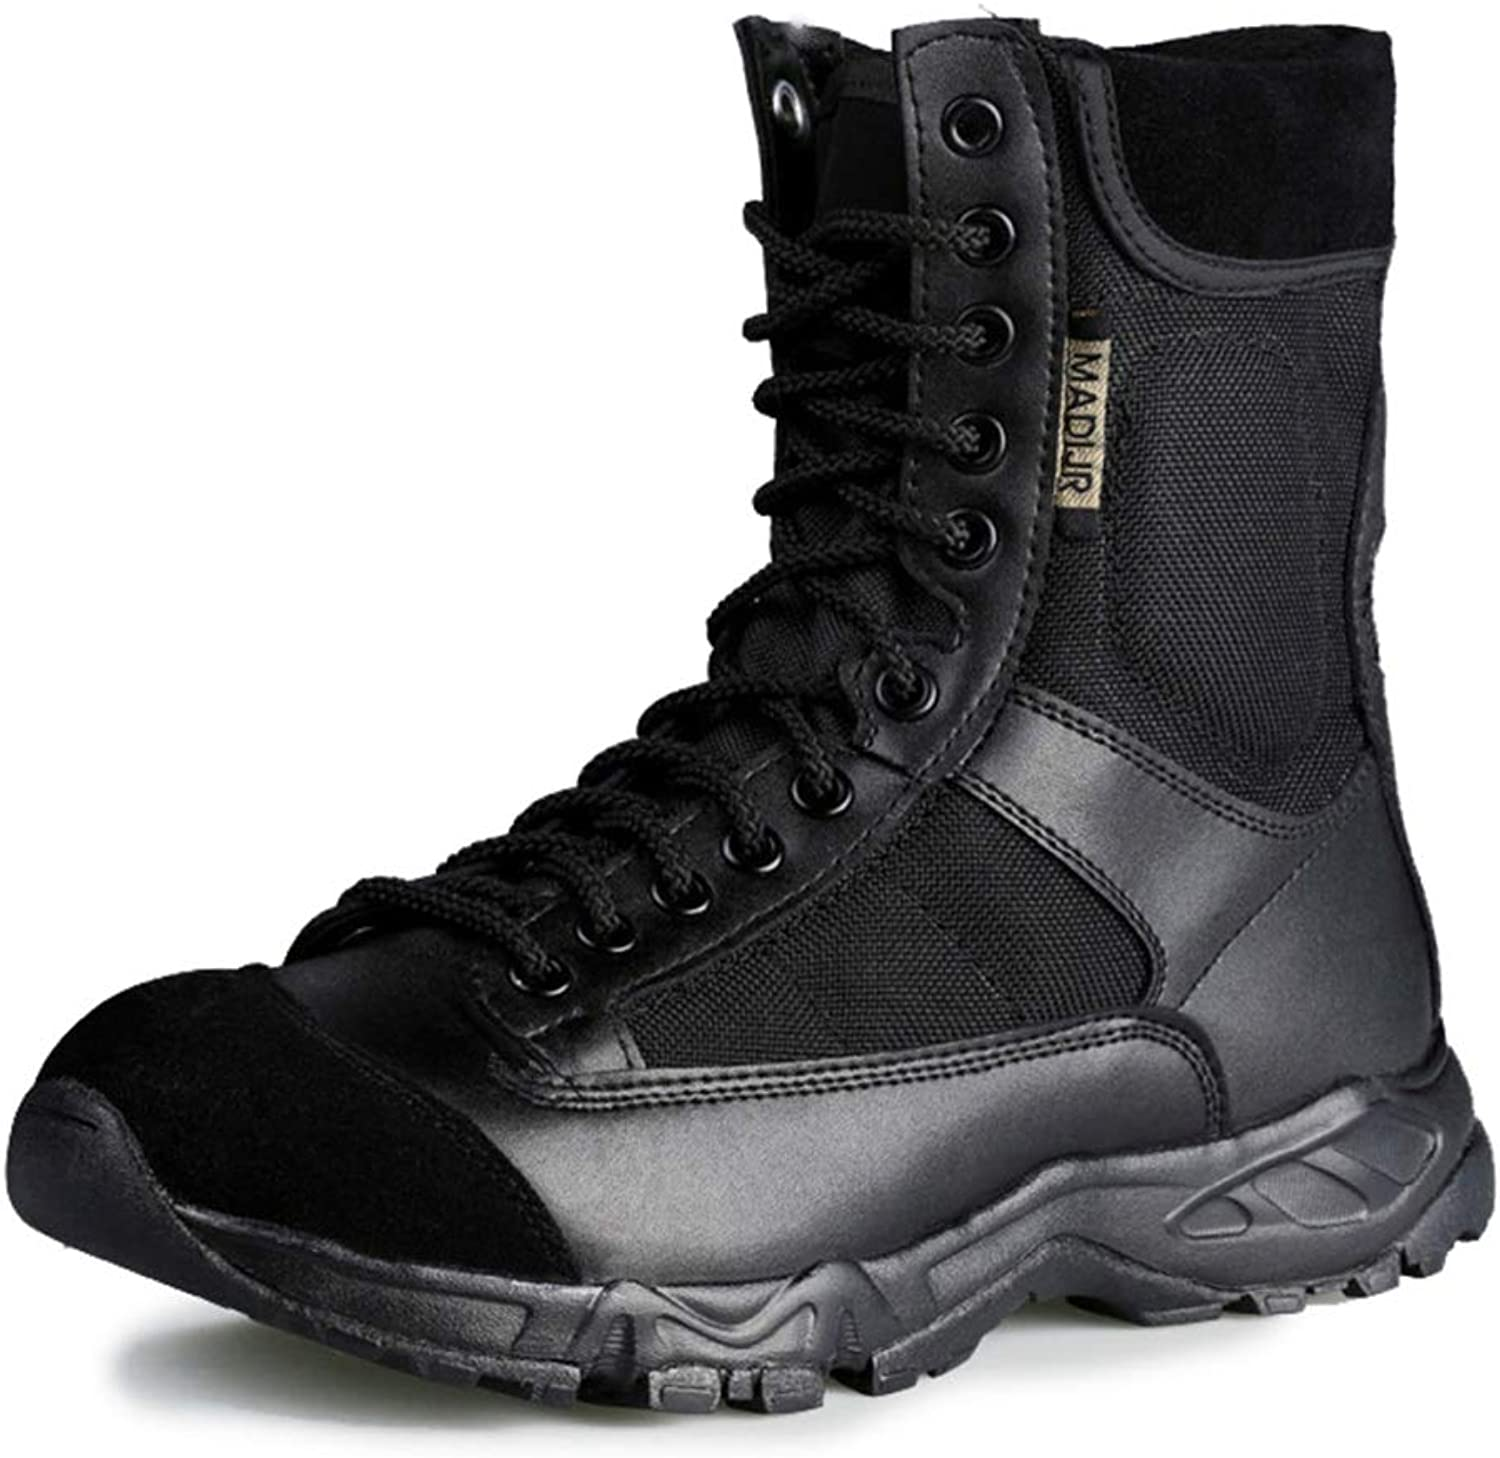 GTYW, Men's Cqb Ultralight Combat Boots, Outdoor Commando Tactical Airborne Boots Hiking Boots, 38-44